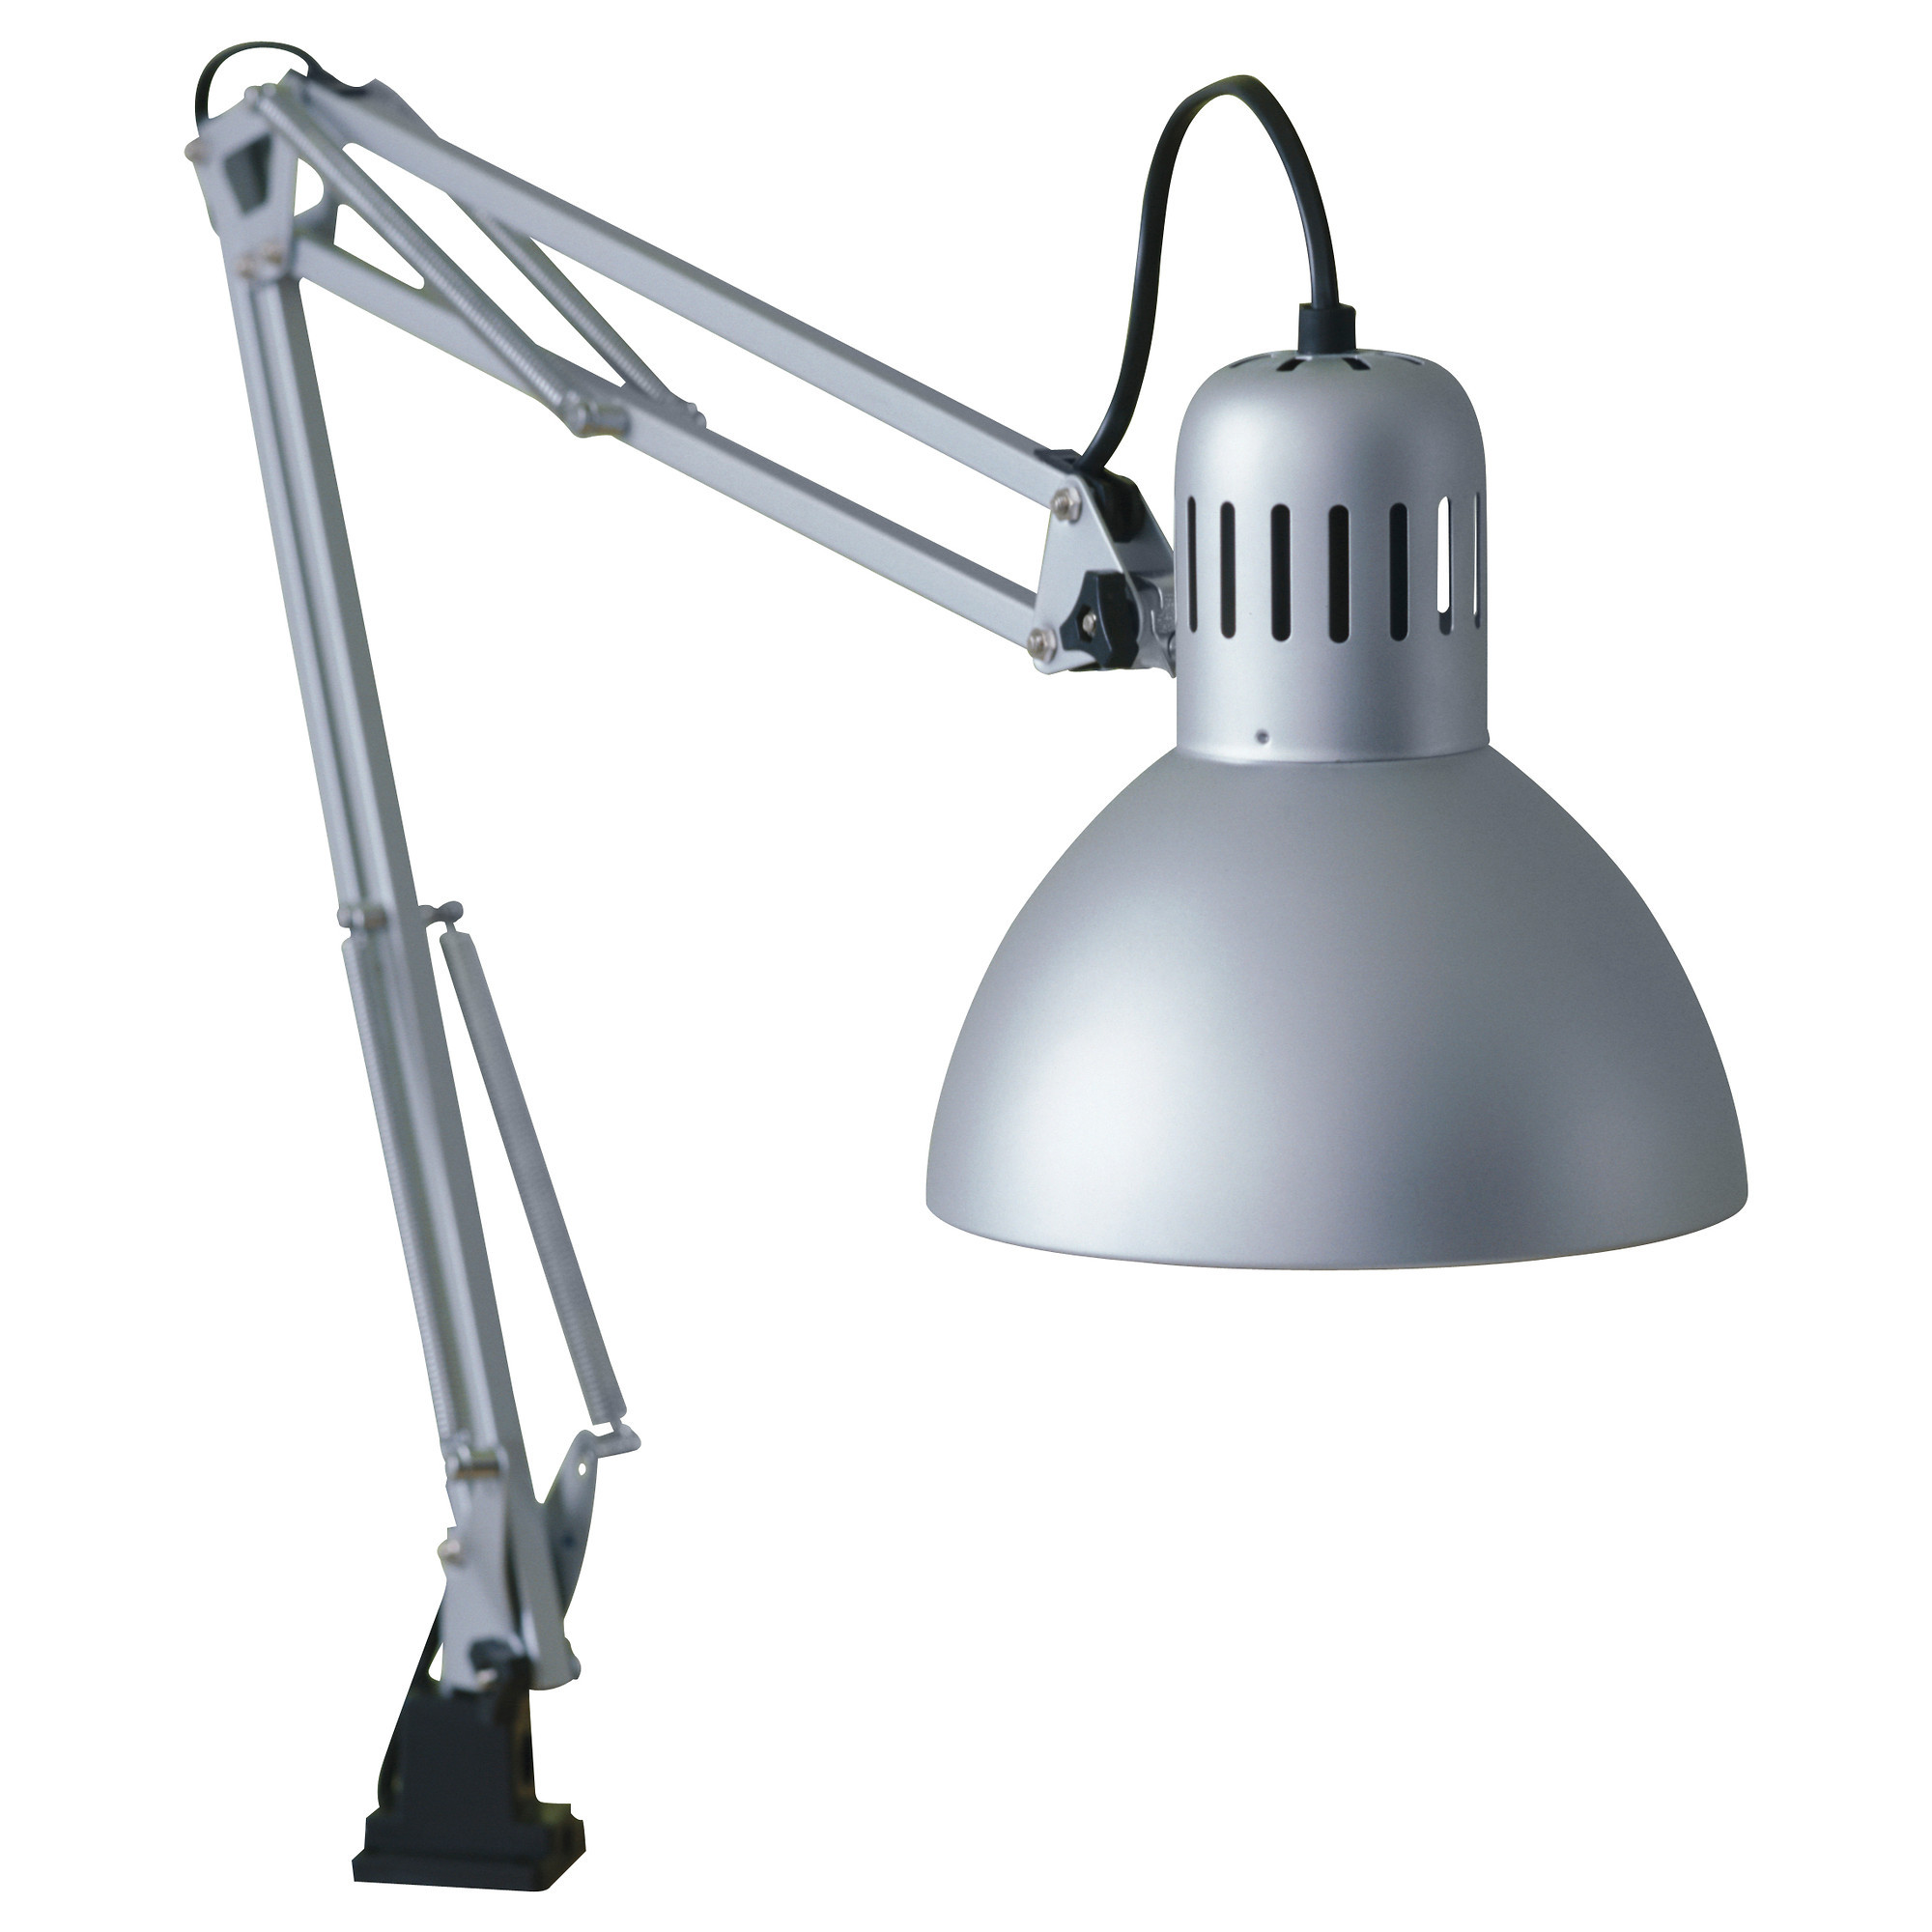 Best ideas about Wall Mounted Desk Lamp . Save or Pin Wall mounted desk lamp 10 things to know before Now.